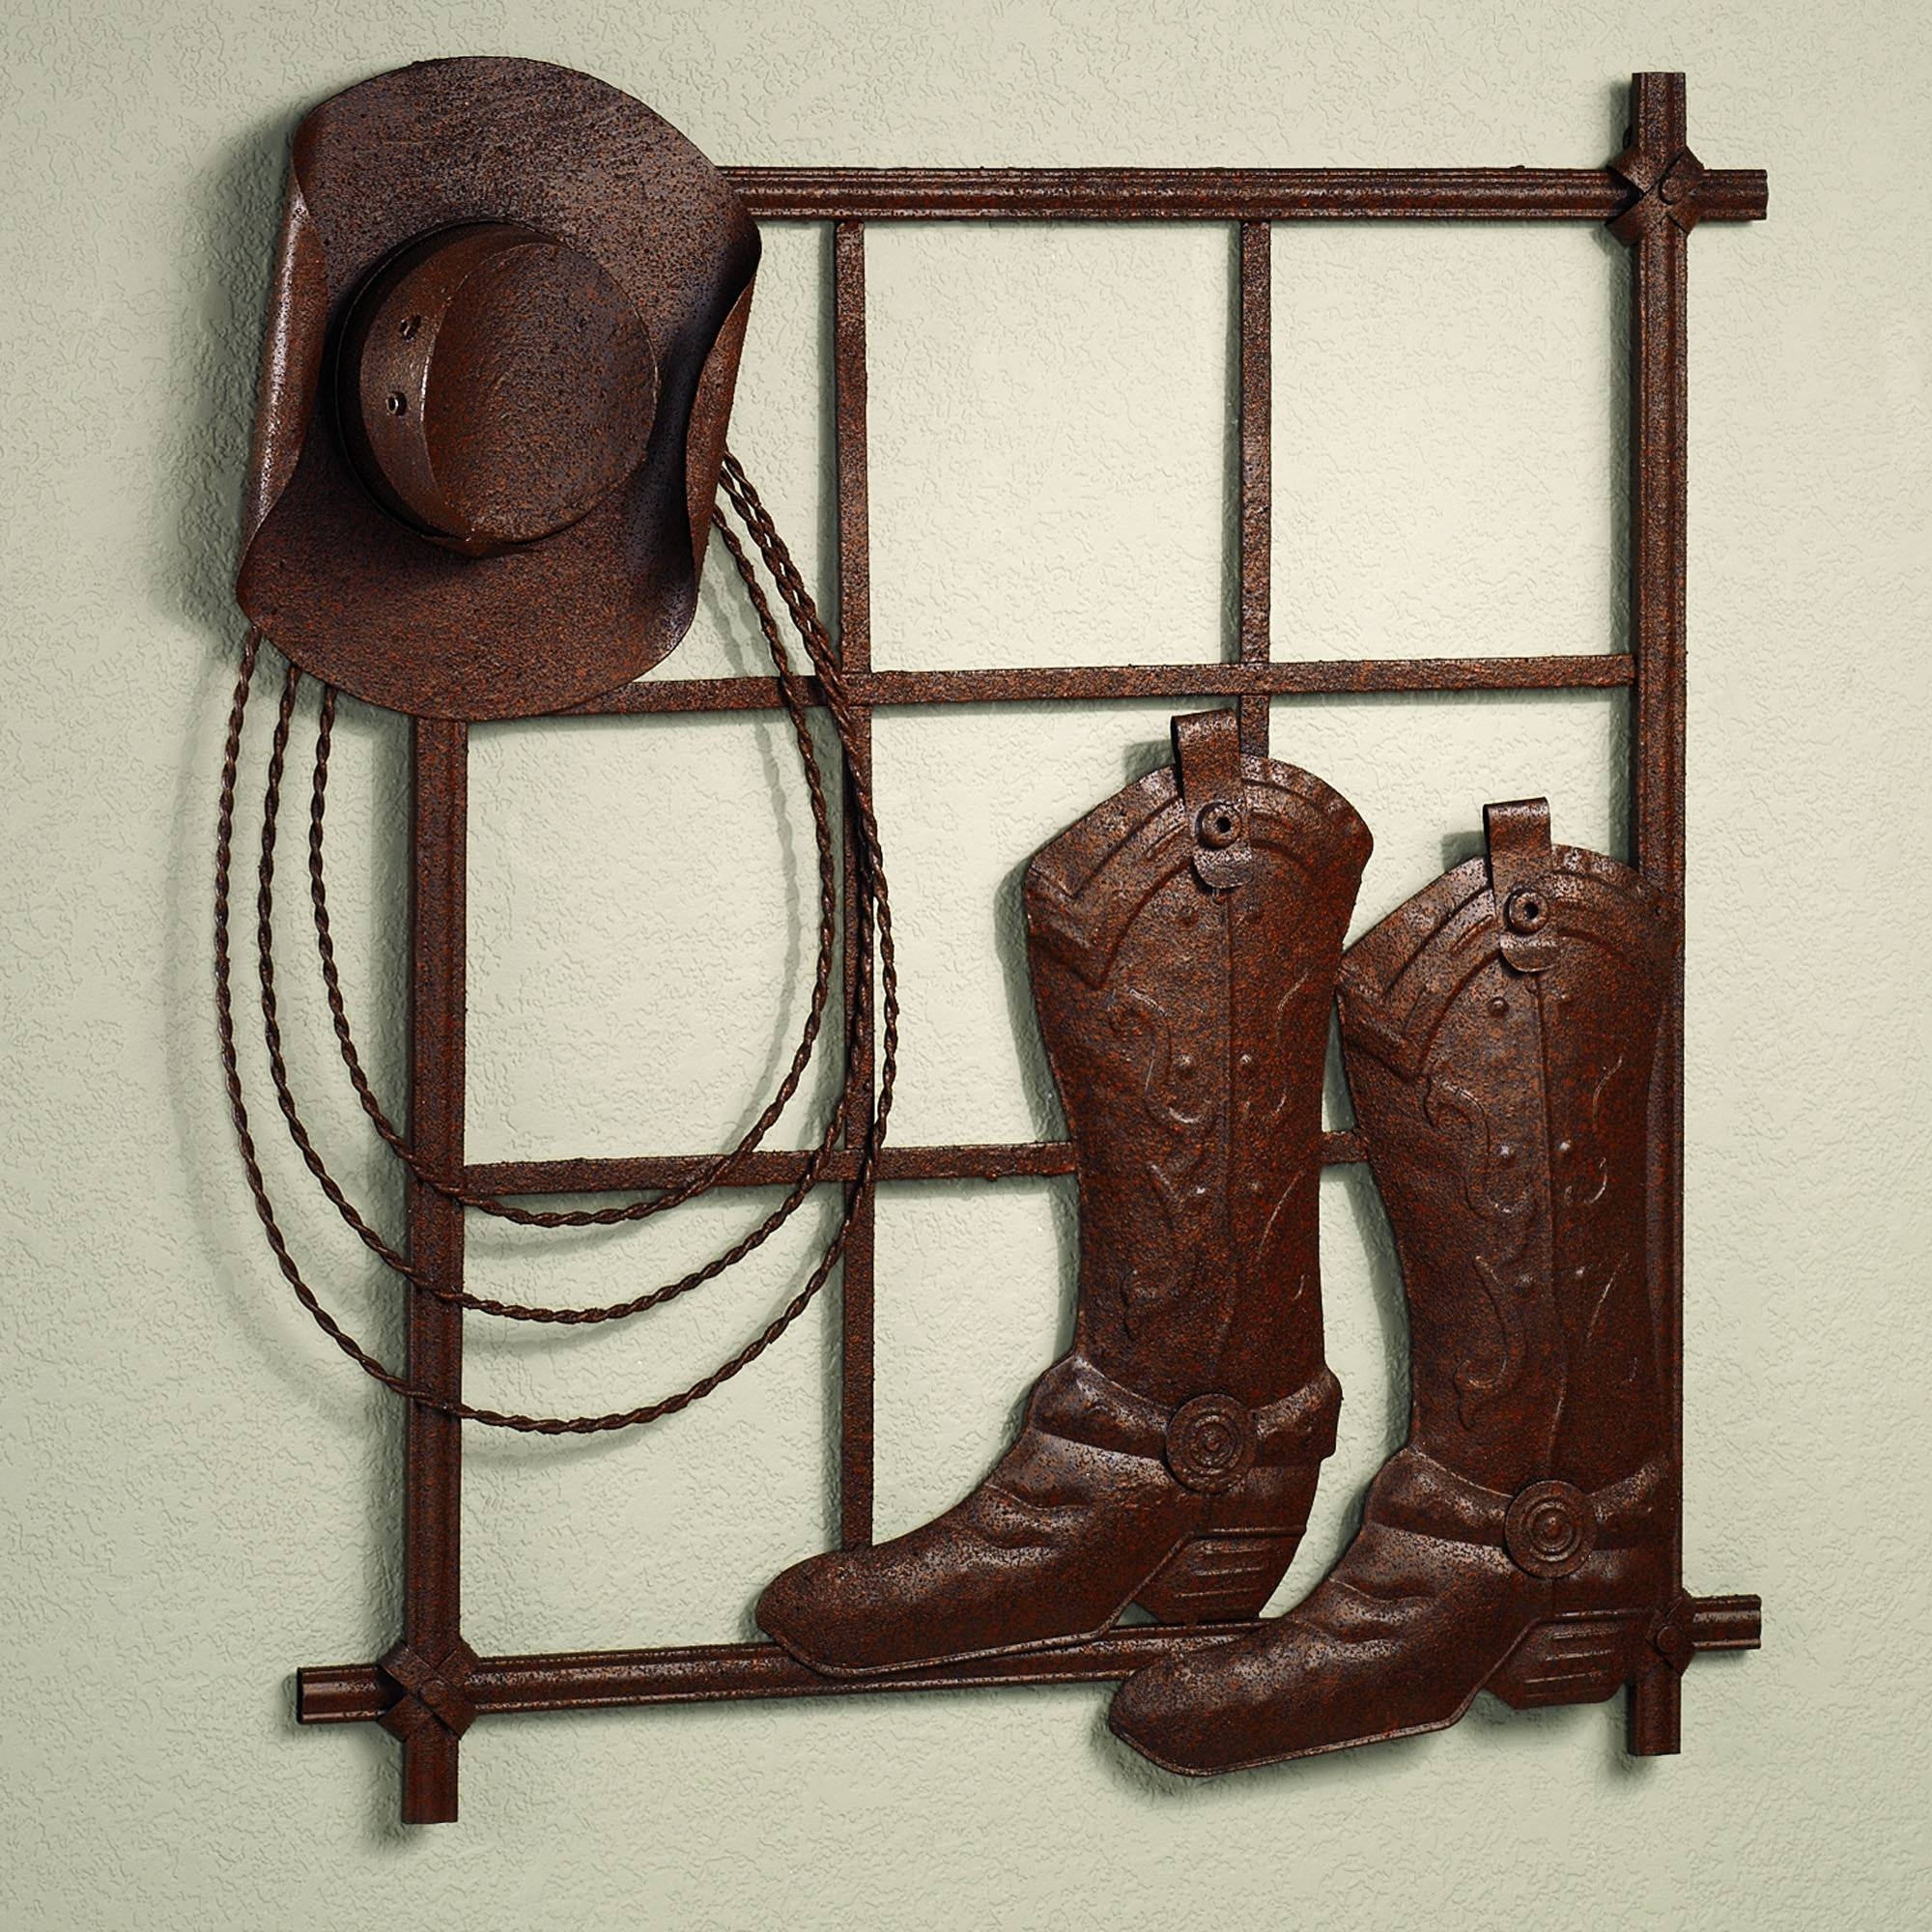 Home Design : Rustic Wood And Metal Wall Art Craftsman Large For Most Up To Date Wood And Metal Wall Art (Gallery 20 of 20)